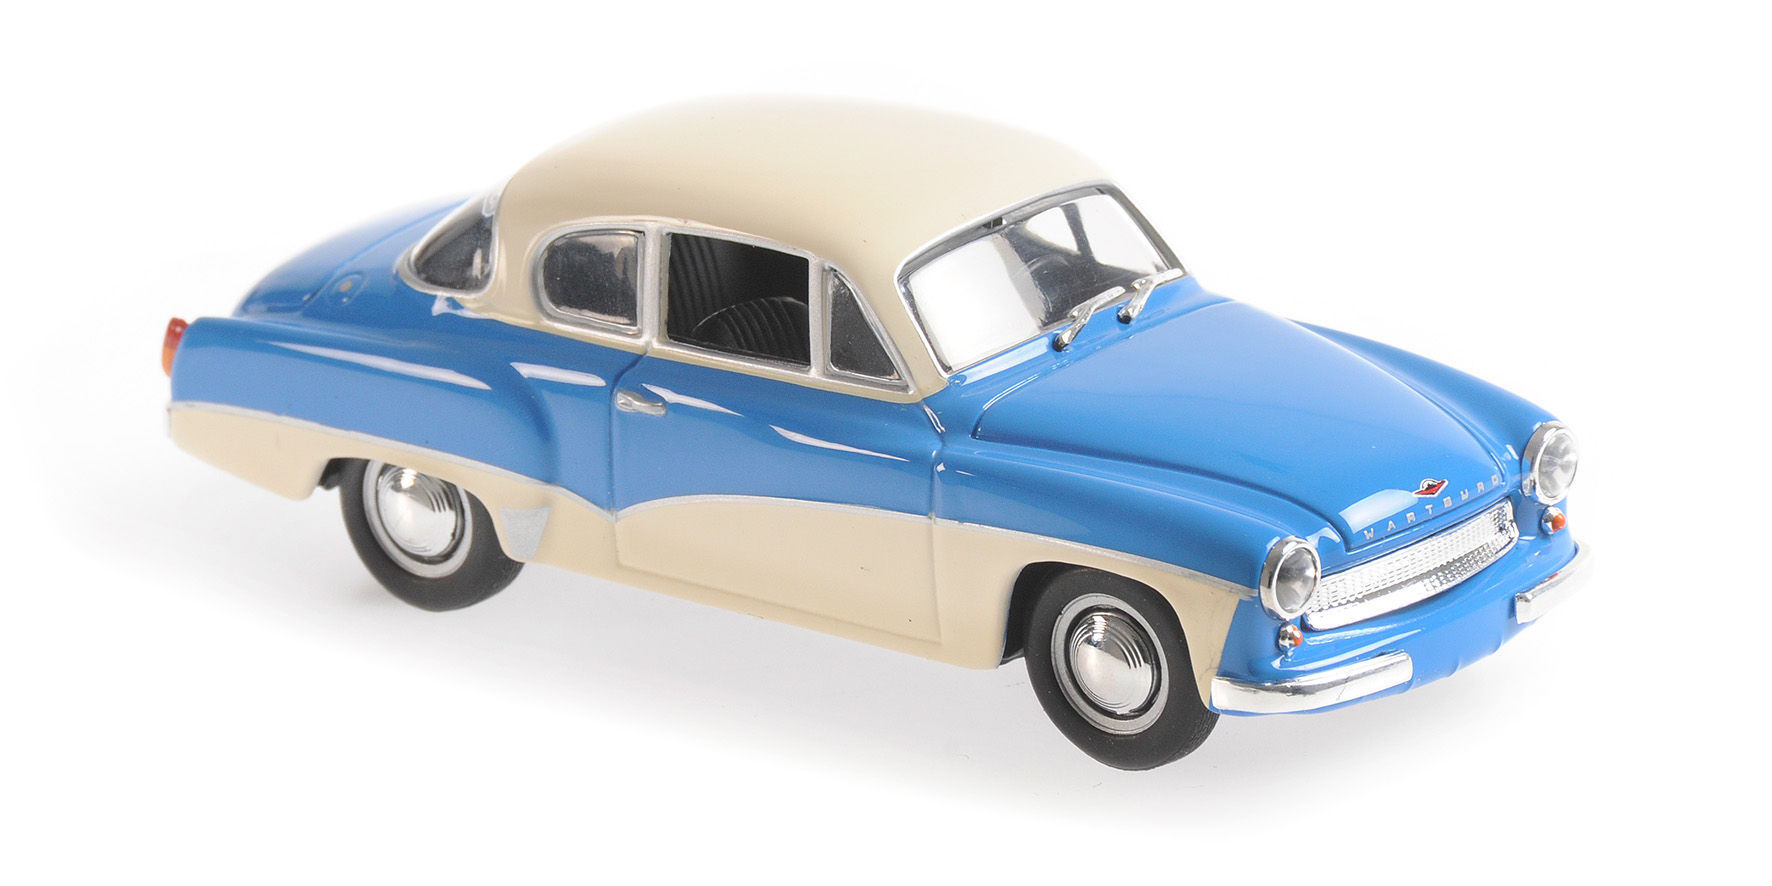 Wartburg A311 Coupe 1958 Blauw/Wit - 1:43